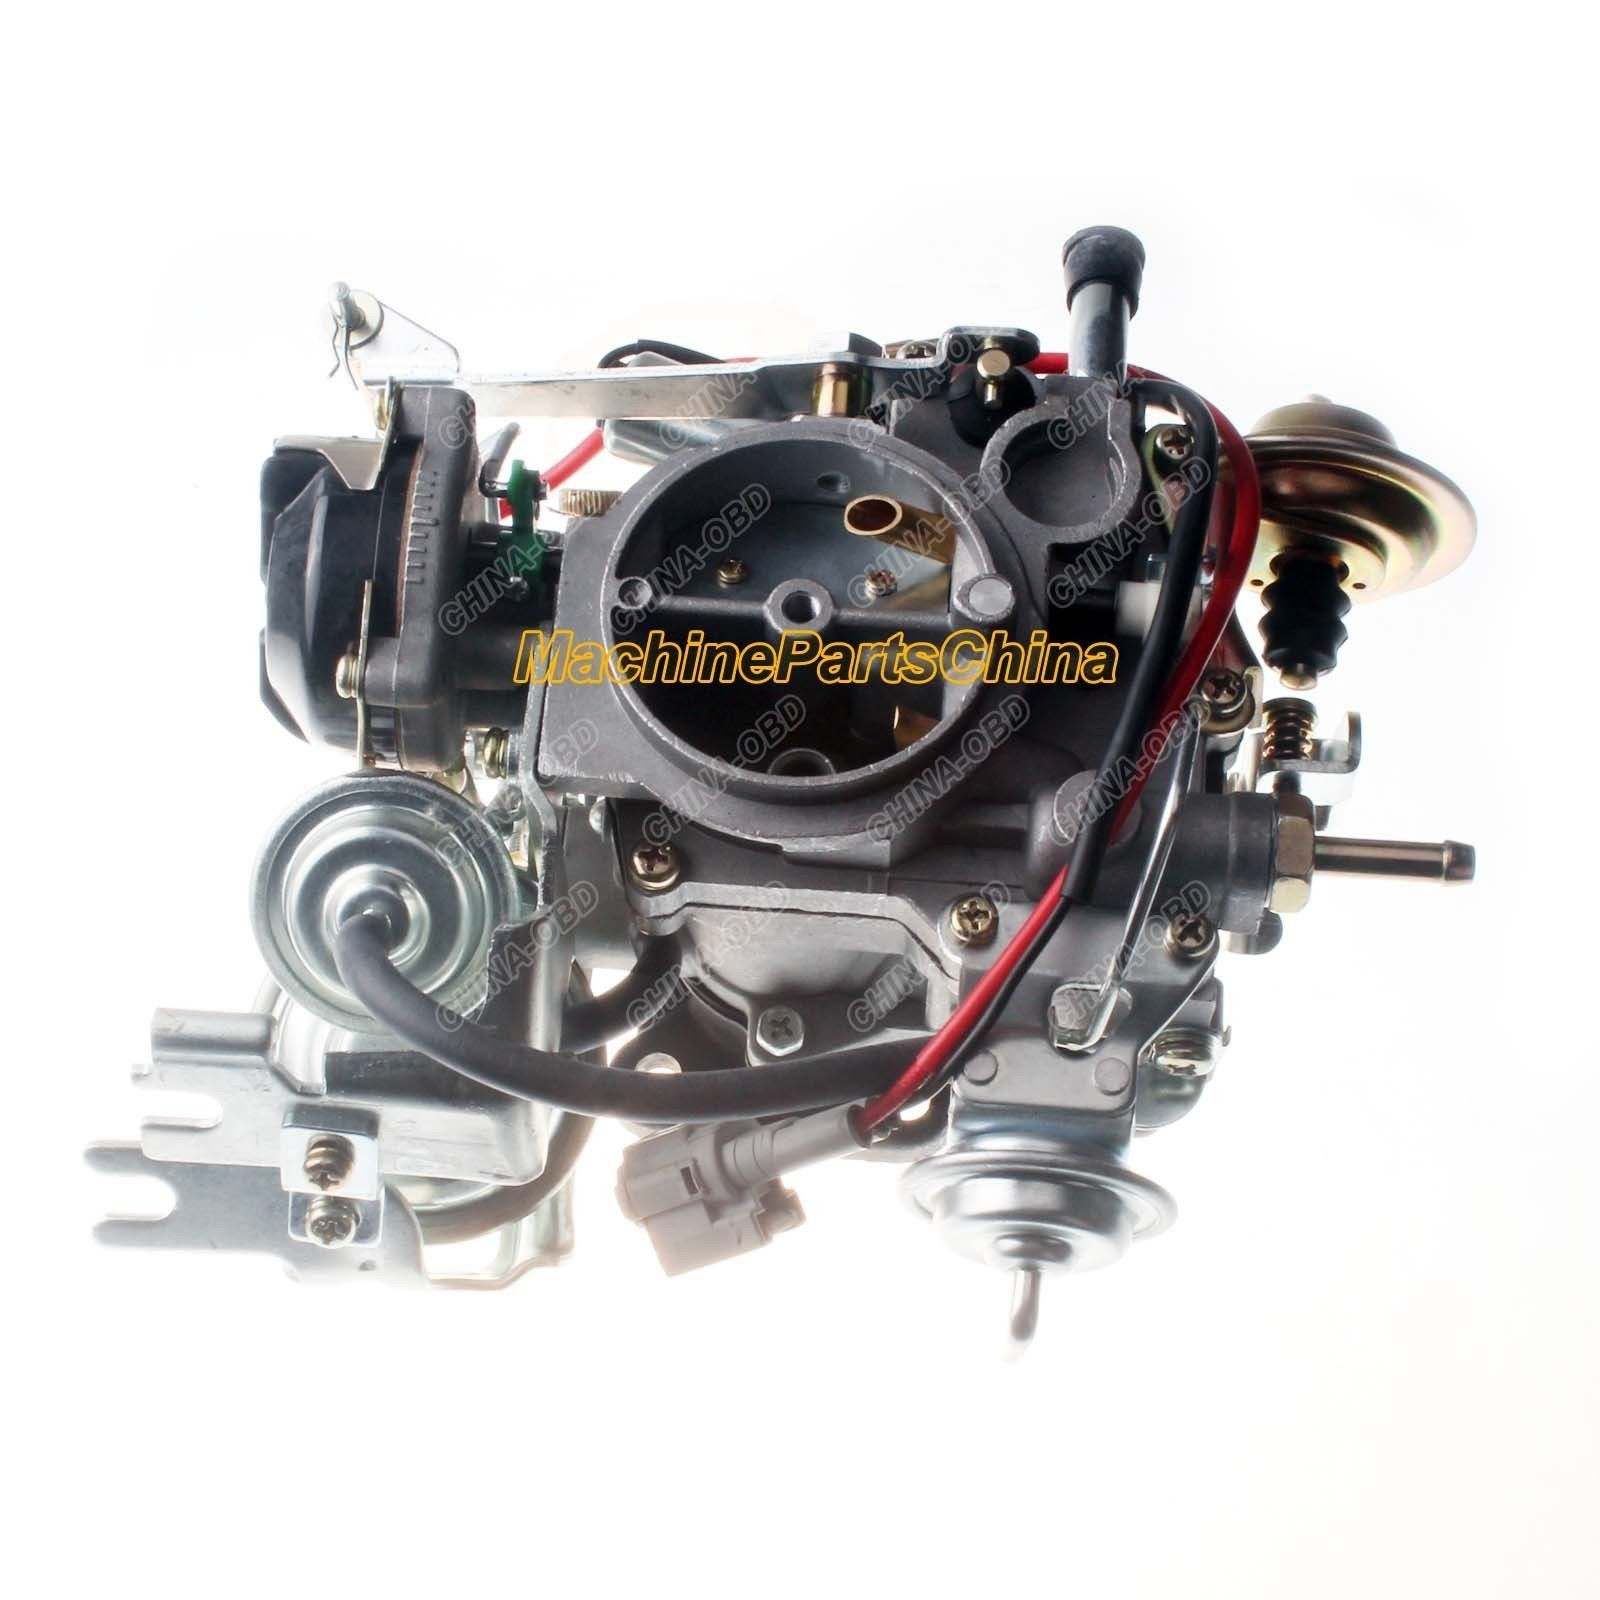 2001 Toyota Tacoma Parts Diagram My Wiring Tercel Engine Carburetor For 2e Corolla 1995 1990 1994